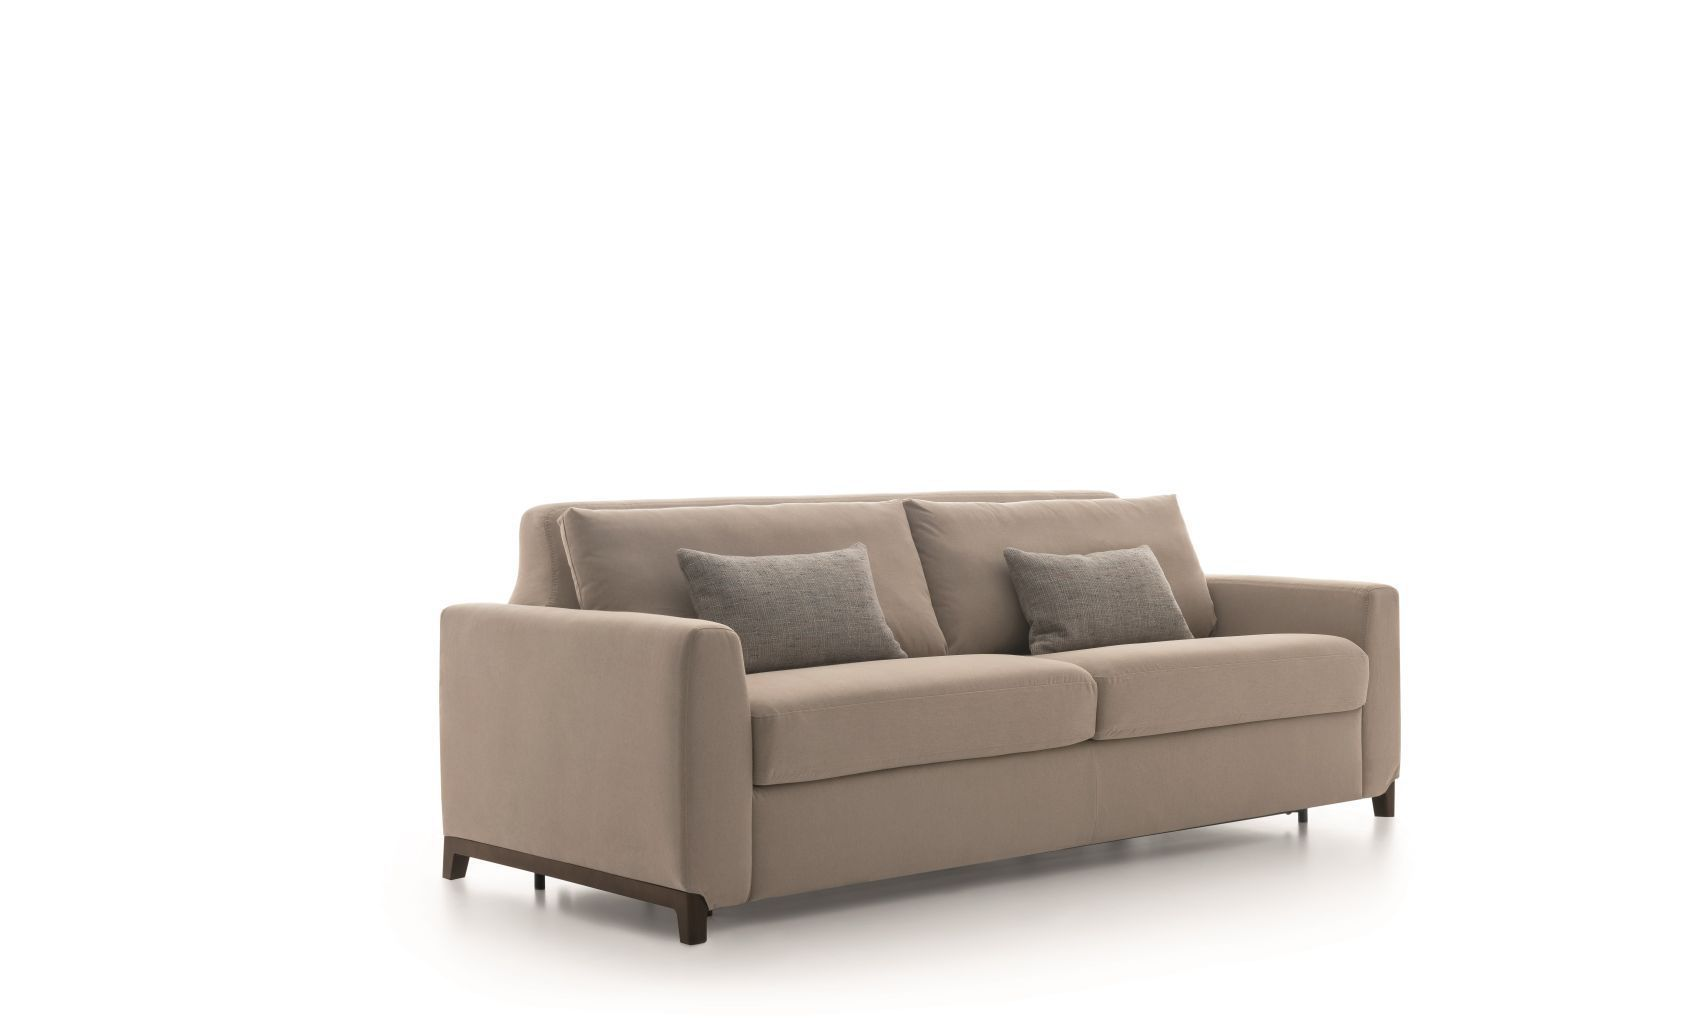 moods 3 seater leather sofa bed outdoor sets perth contemporary fabric good mood by spessotto